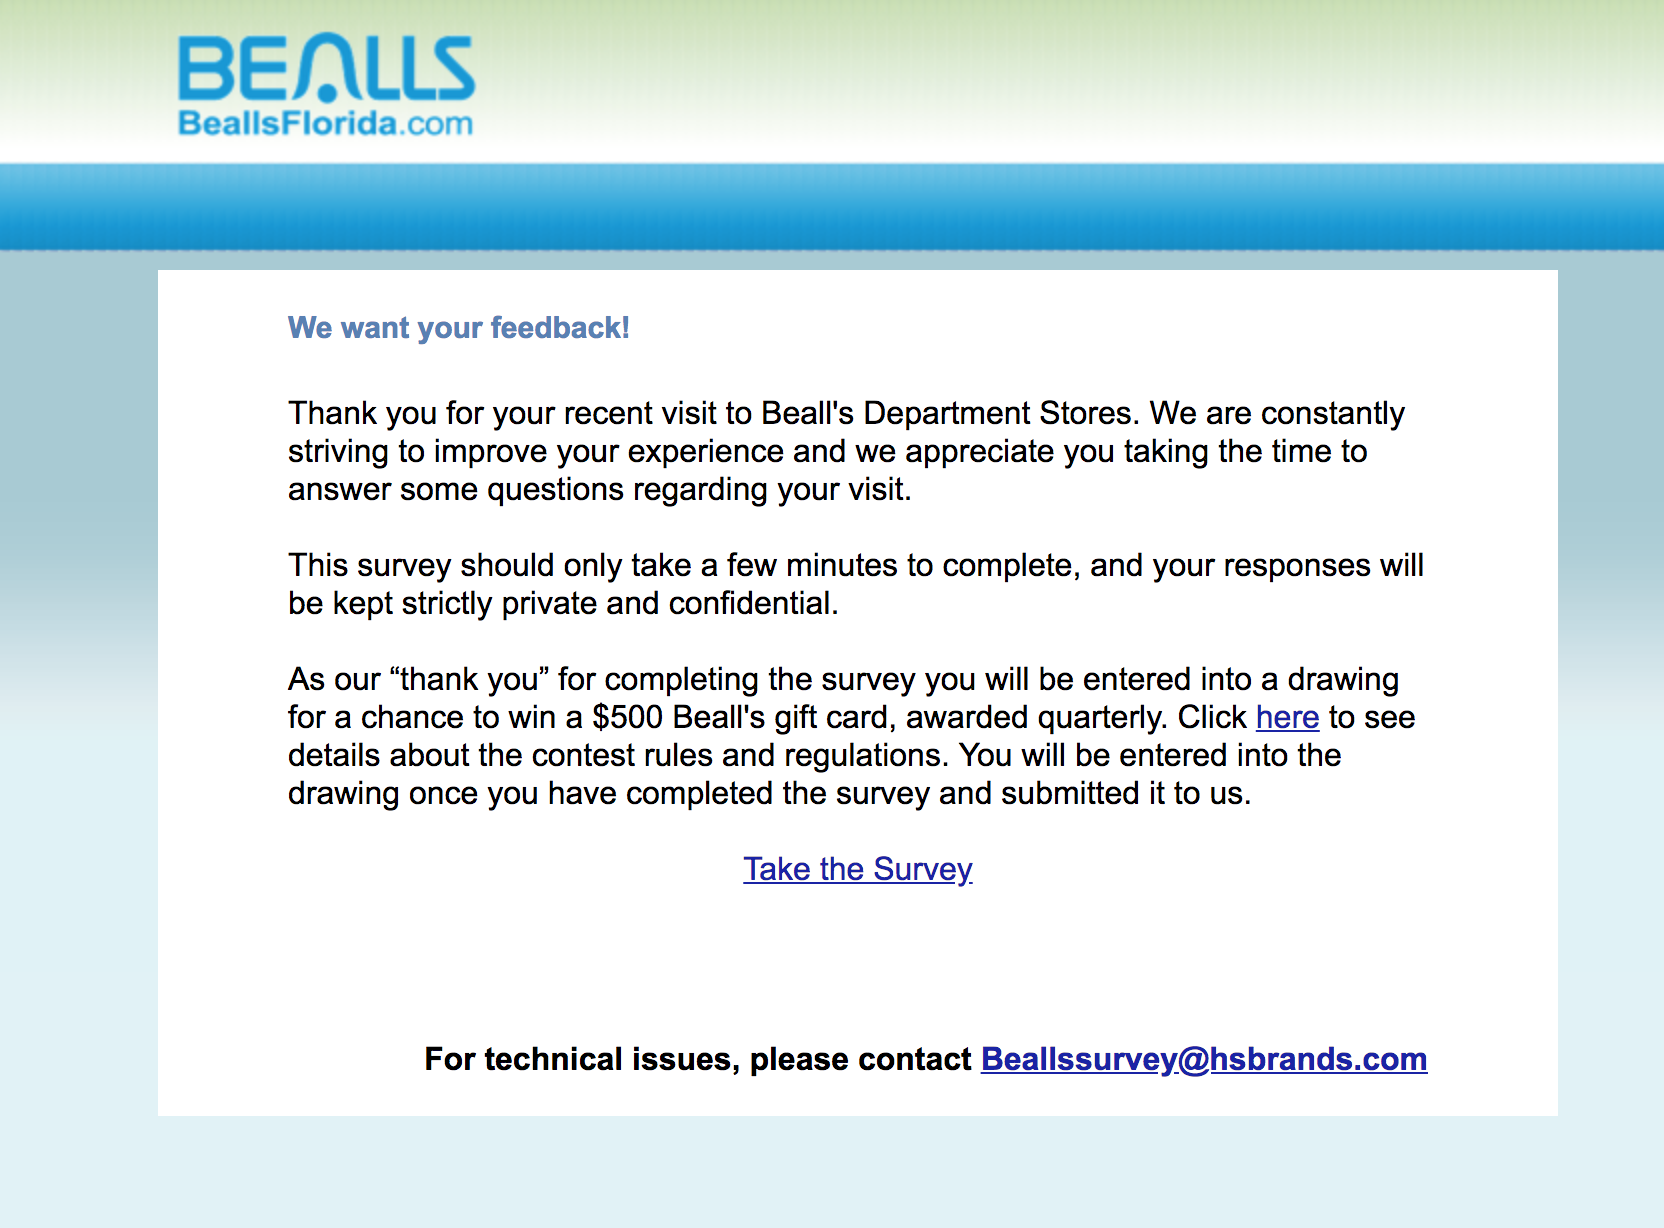 bealls florida survey homepage